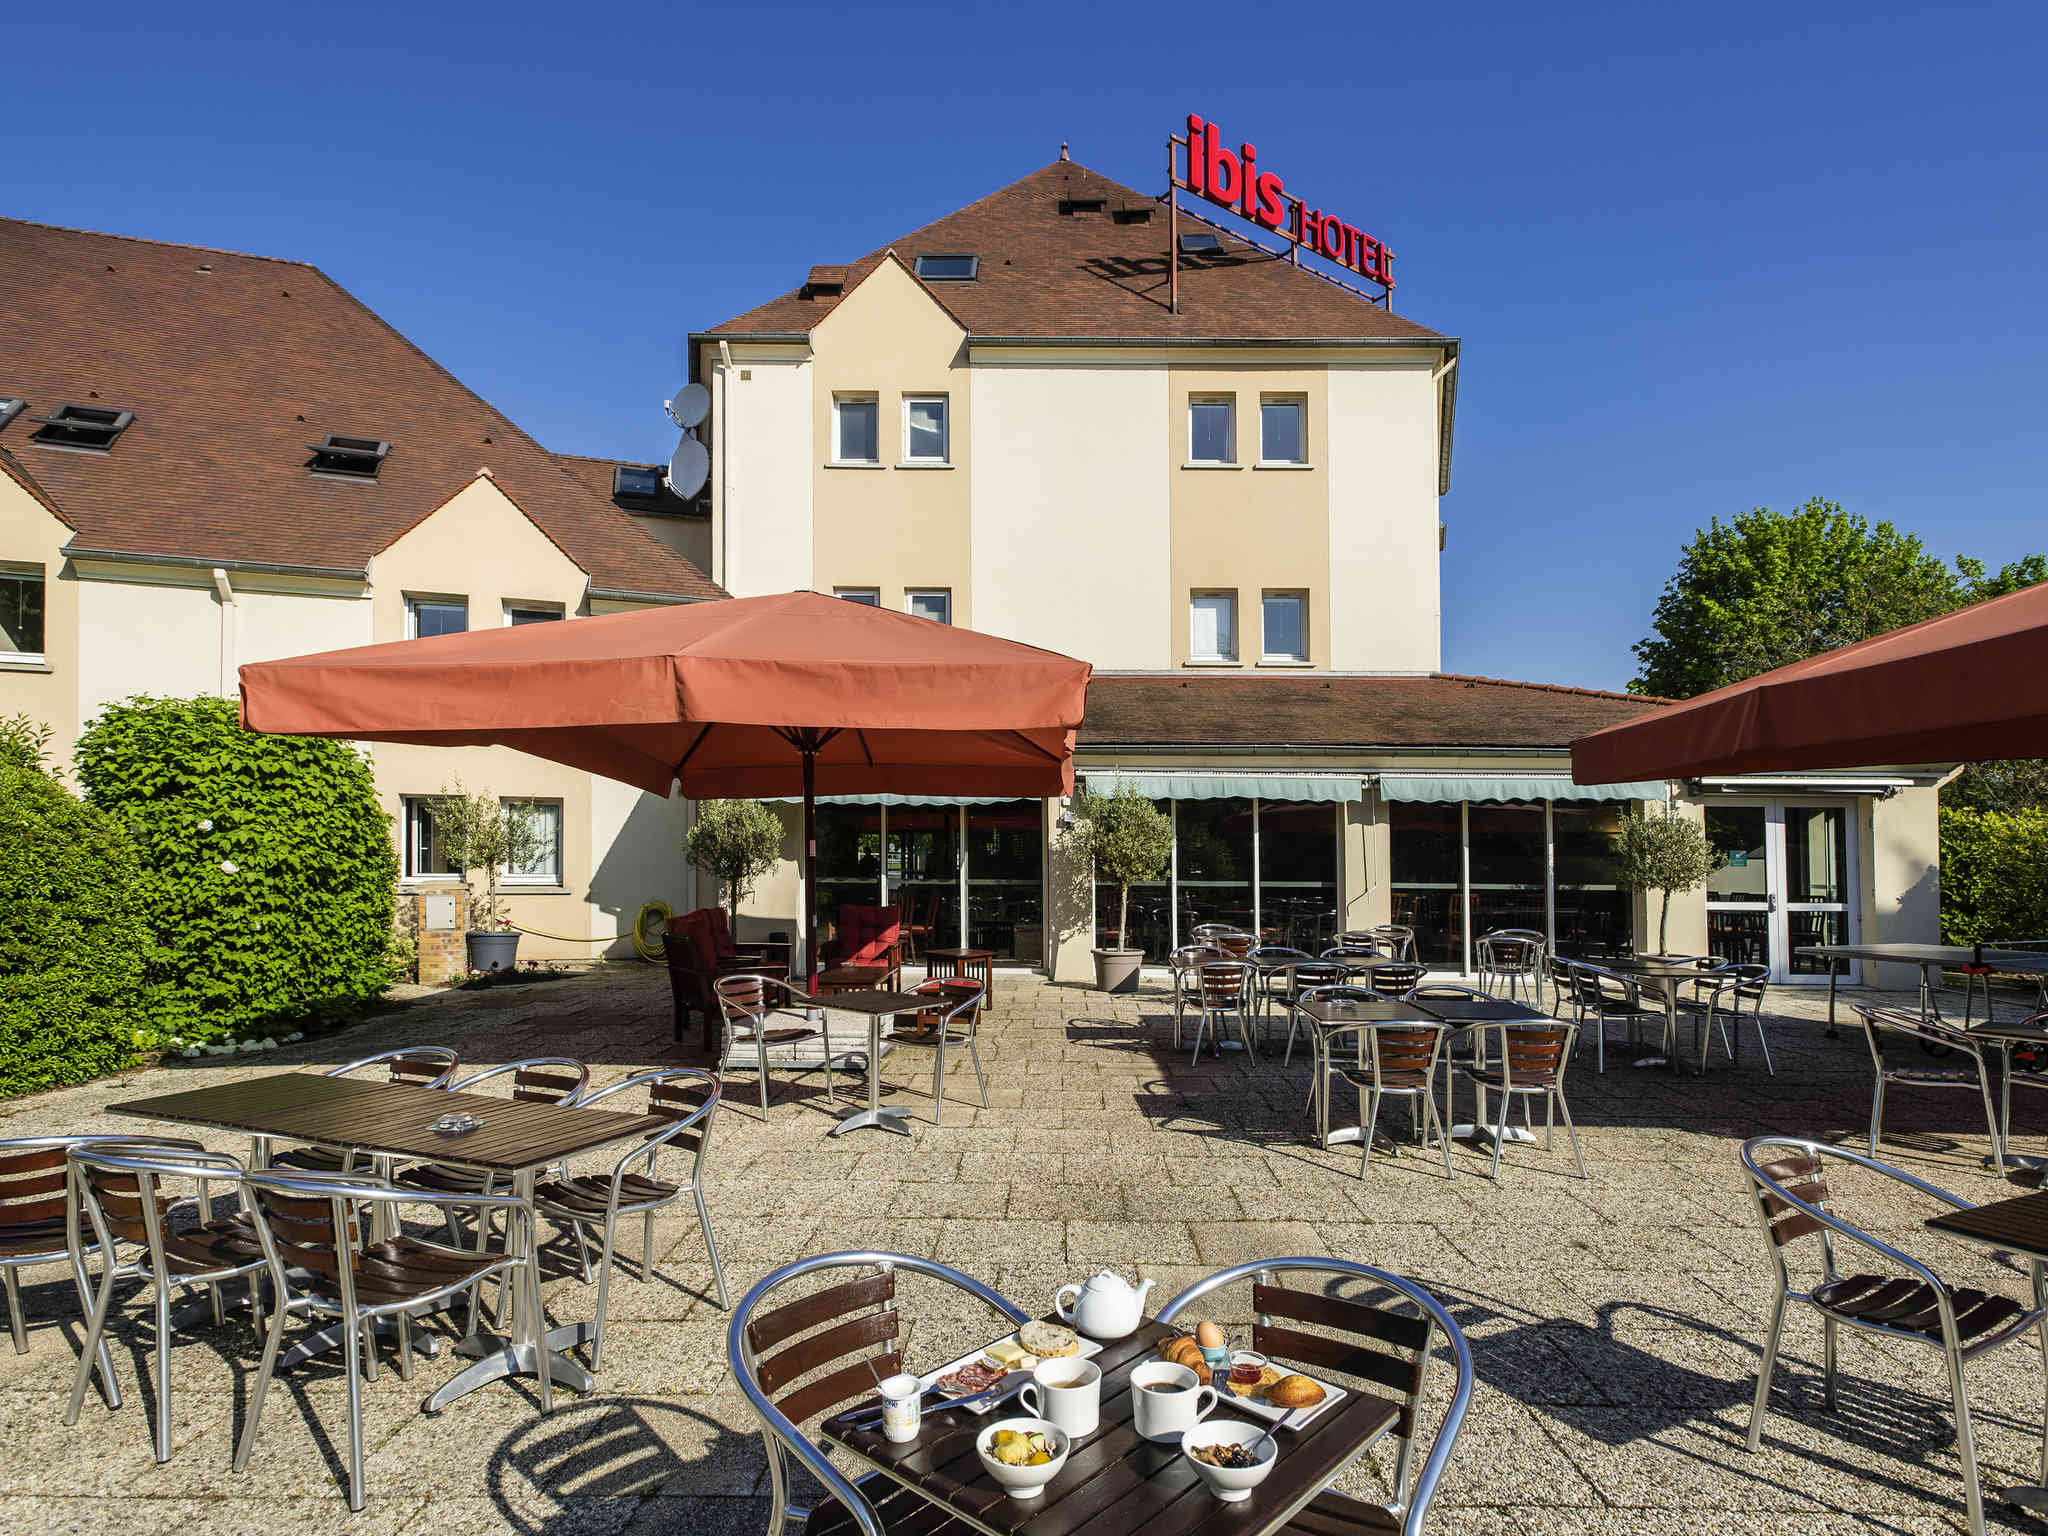 Hotel – ibis Chateau Thierry